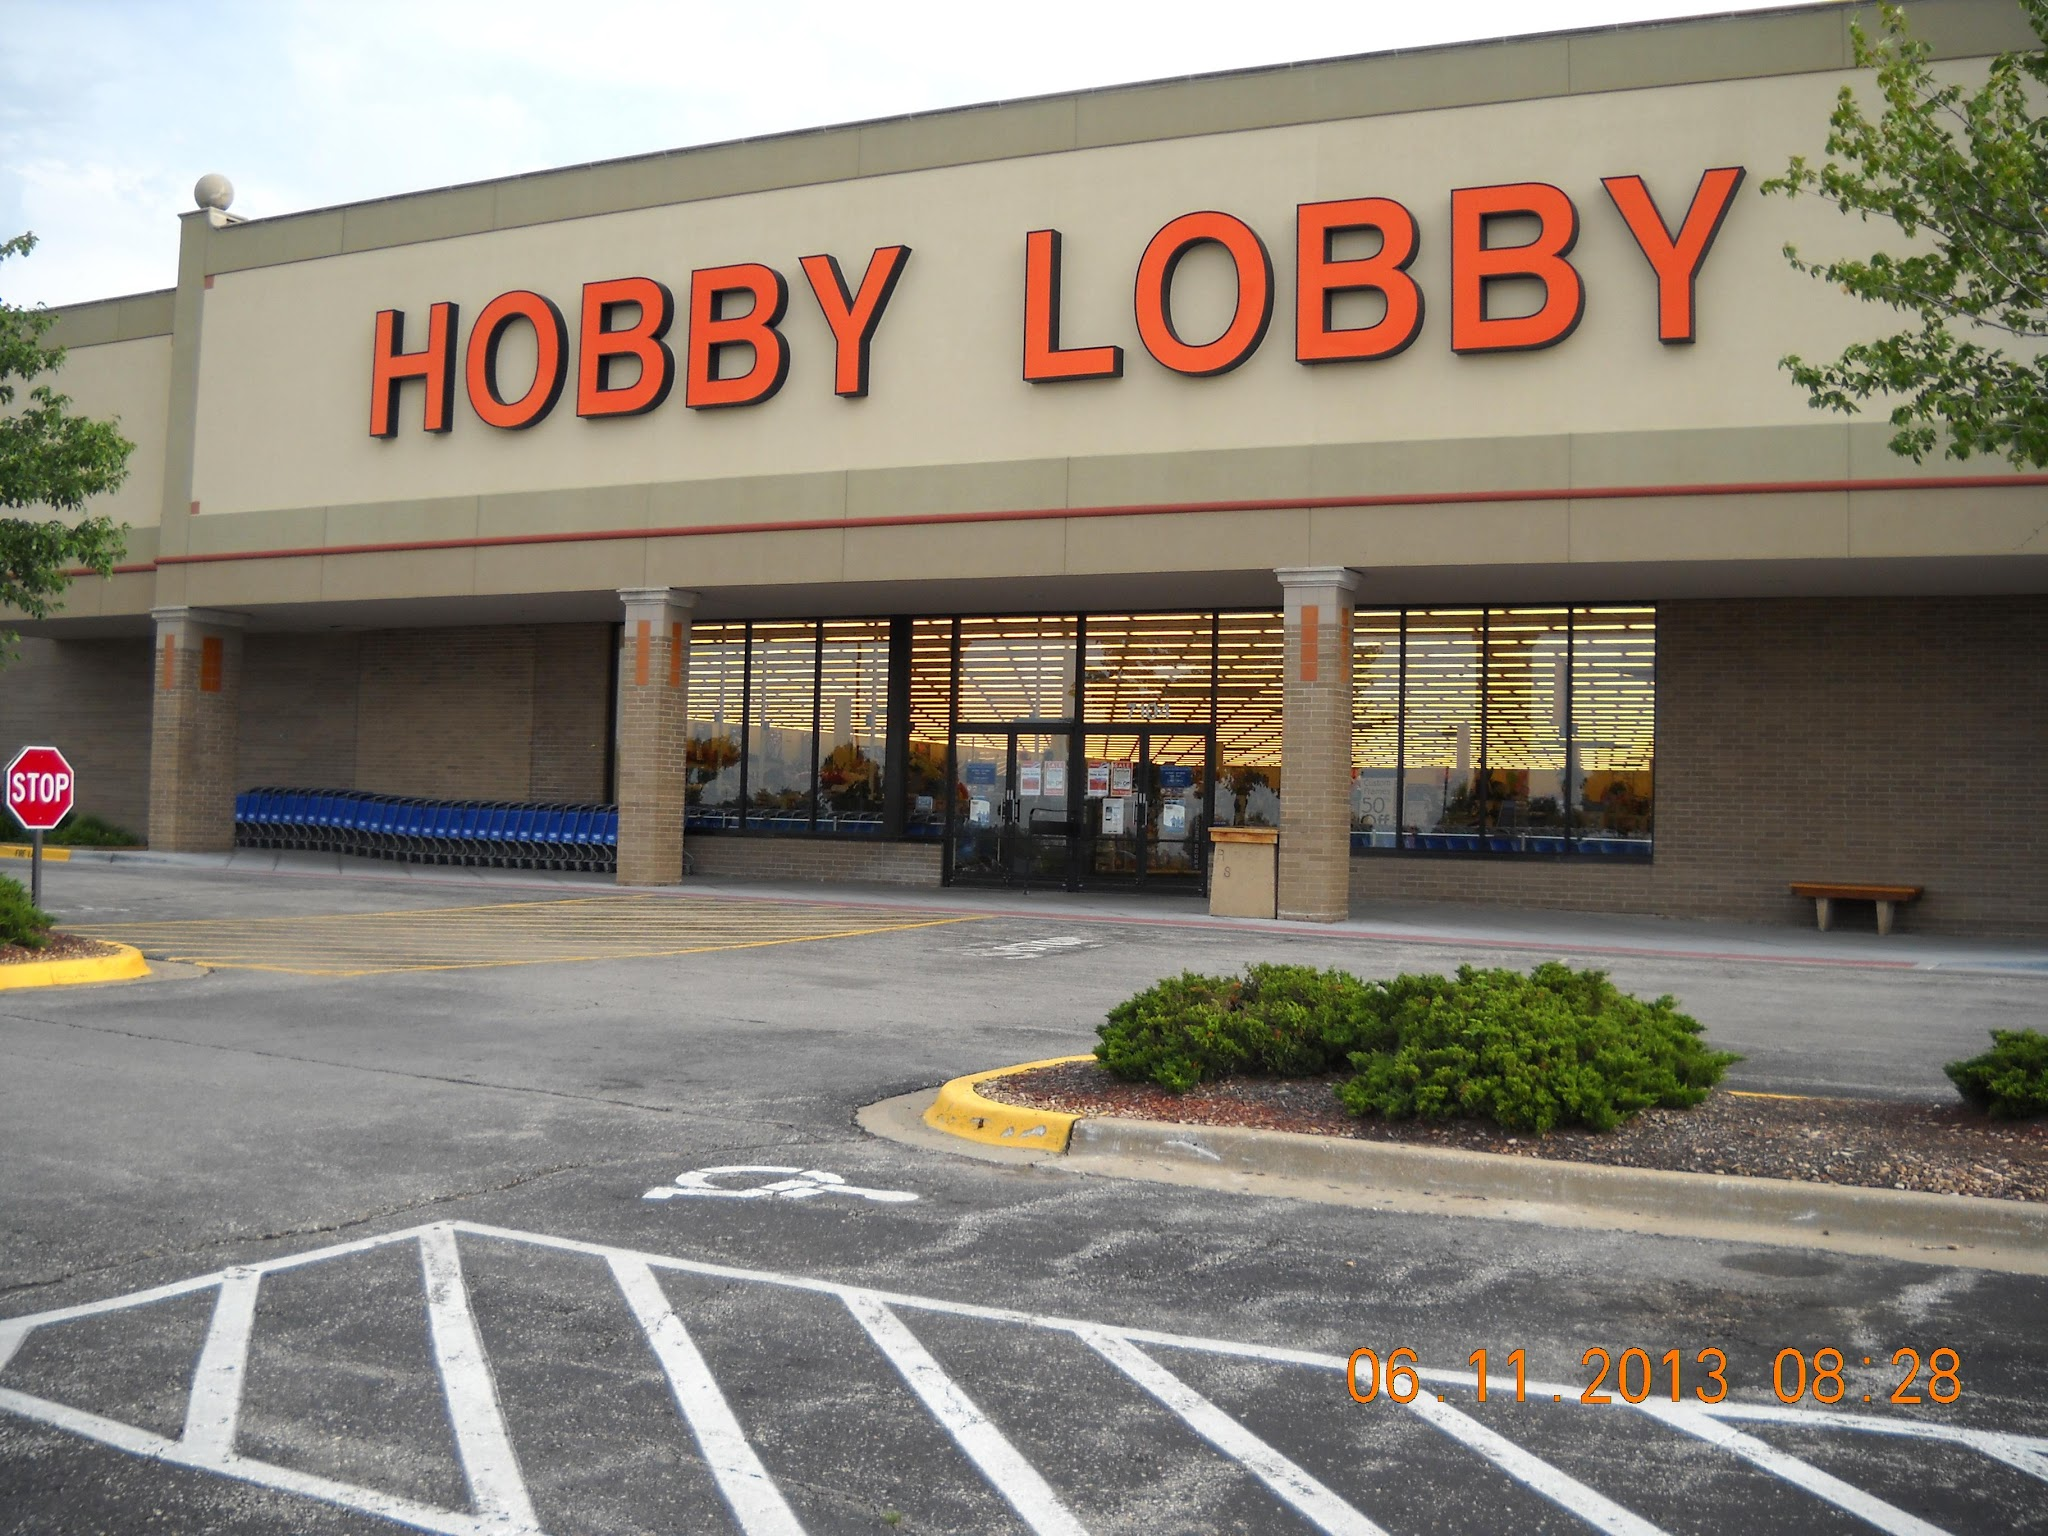 Hobby Lobby At 7104 W 119th St Overland Park Ks On Fave